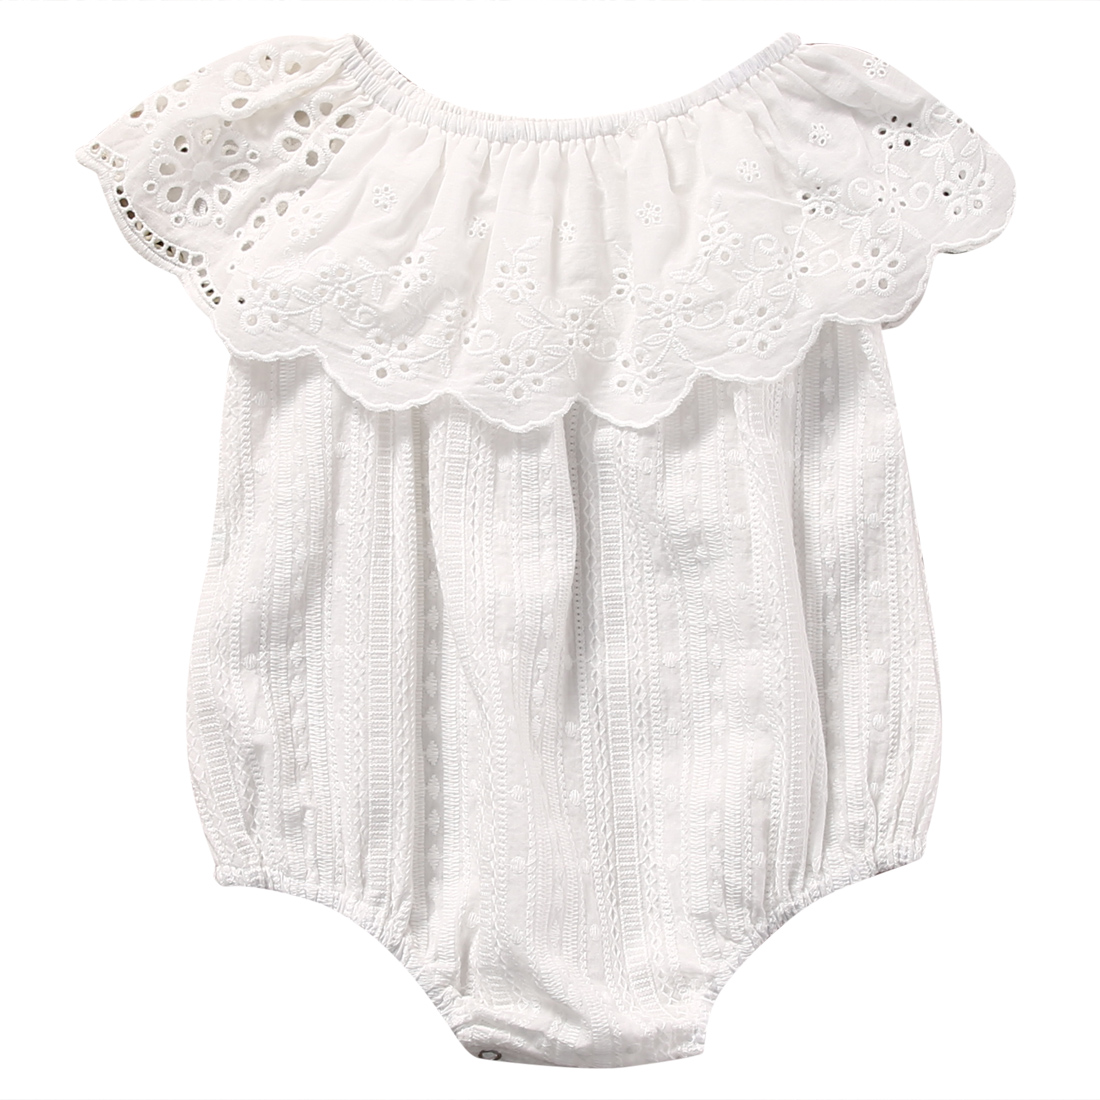 2017 Summer Newborn Baby Girl White Lace Romper Jumpsuit Floral Infant Clothes Outfit Sunsuit 2017 floral baby romper newborn baby girl clothes ruffles sleeve bodysuit headband 2pcs outfit bebek giyim sunsuit 0 24m